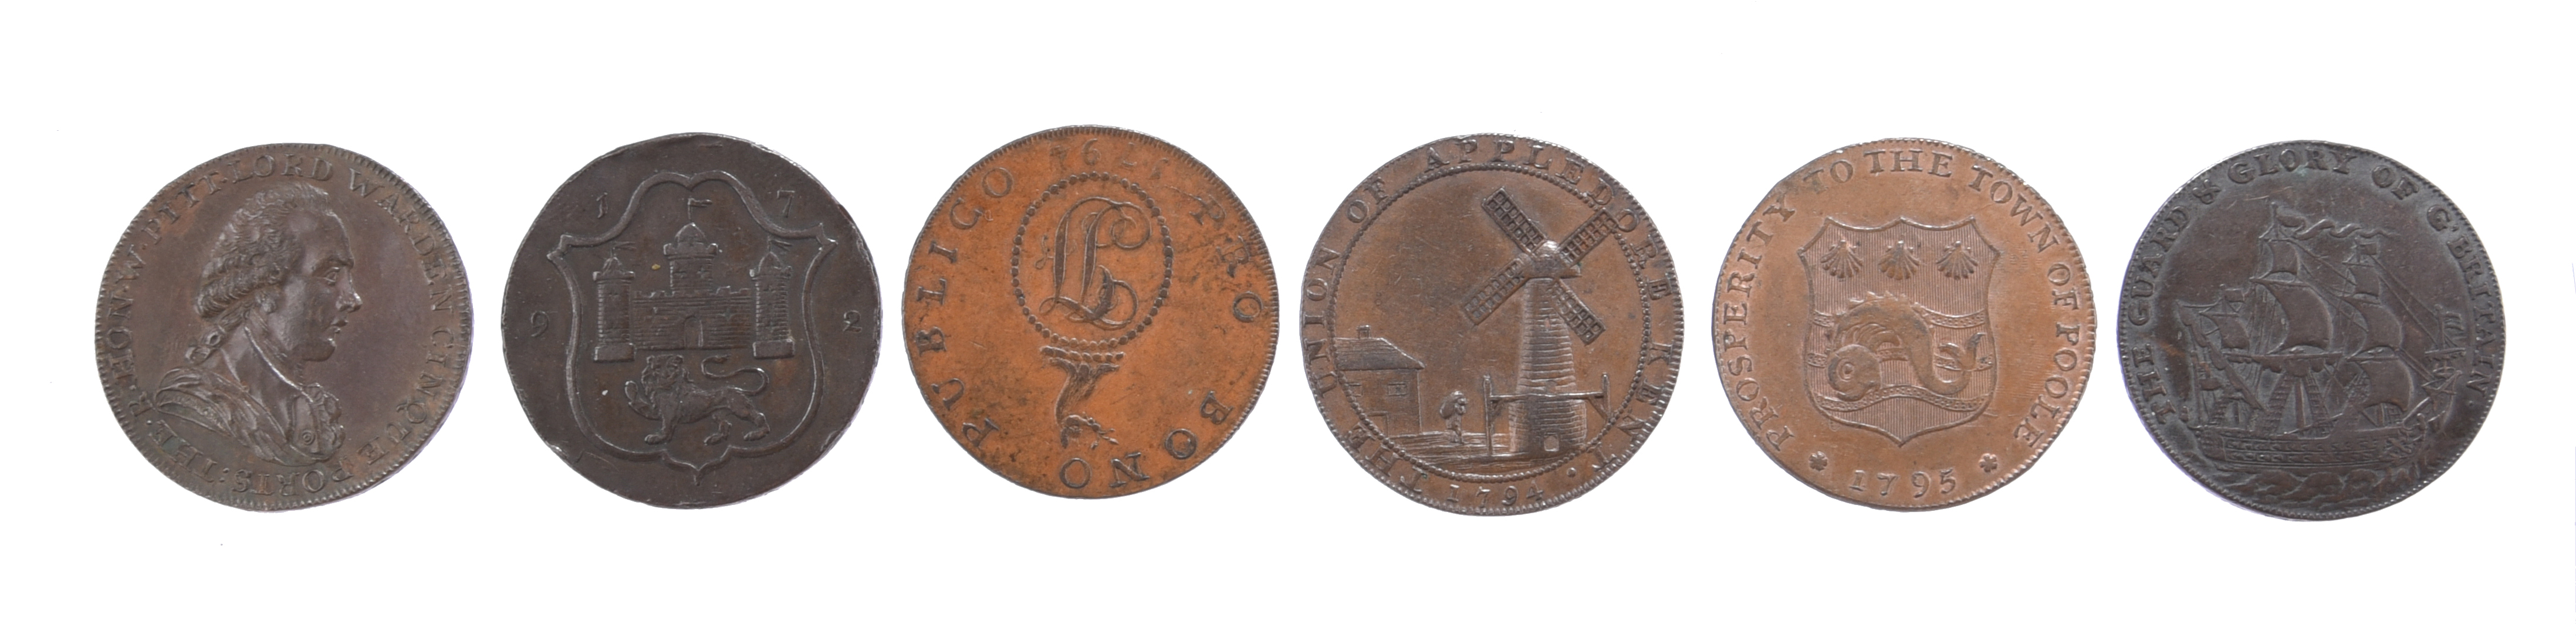 18th century tokens: Kent: Dover halfpenny 1794, William Pitt, rev. Cinque Ports arms, edge AT